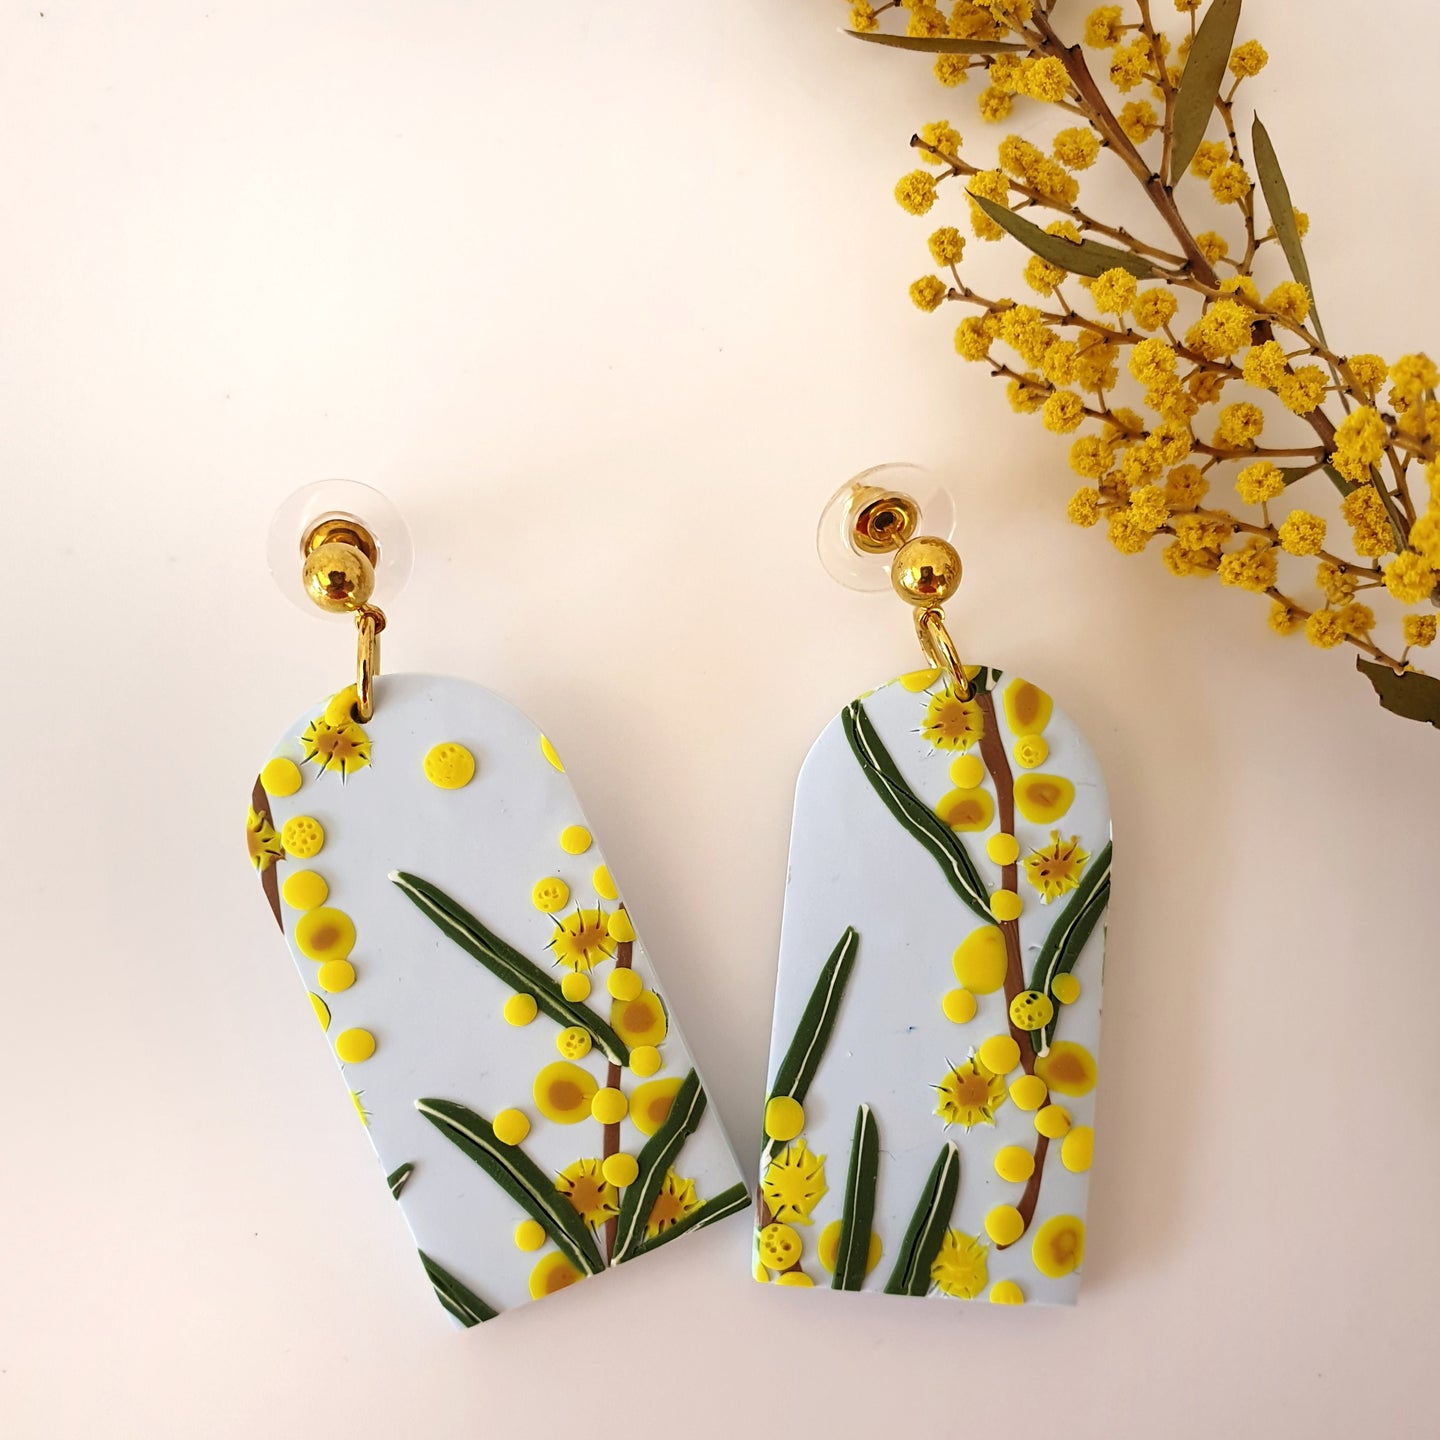 Golden Wattle Collection - Large Arches